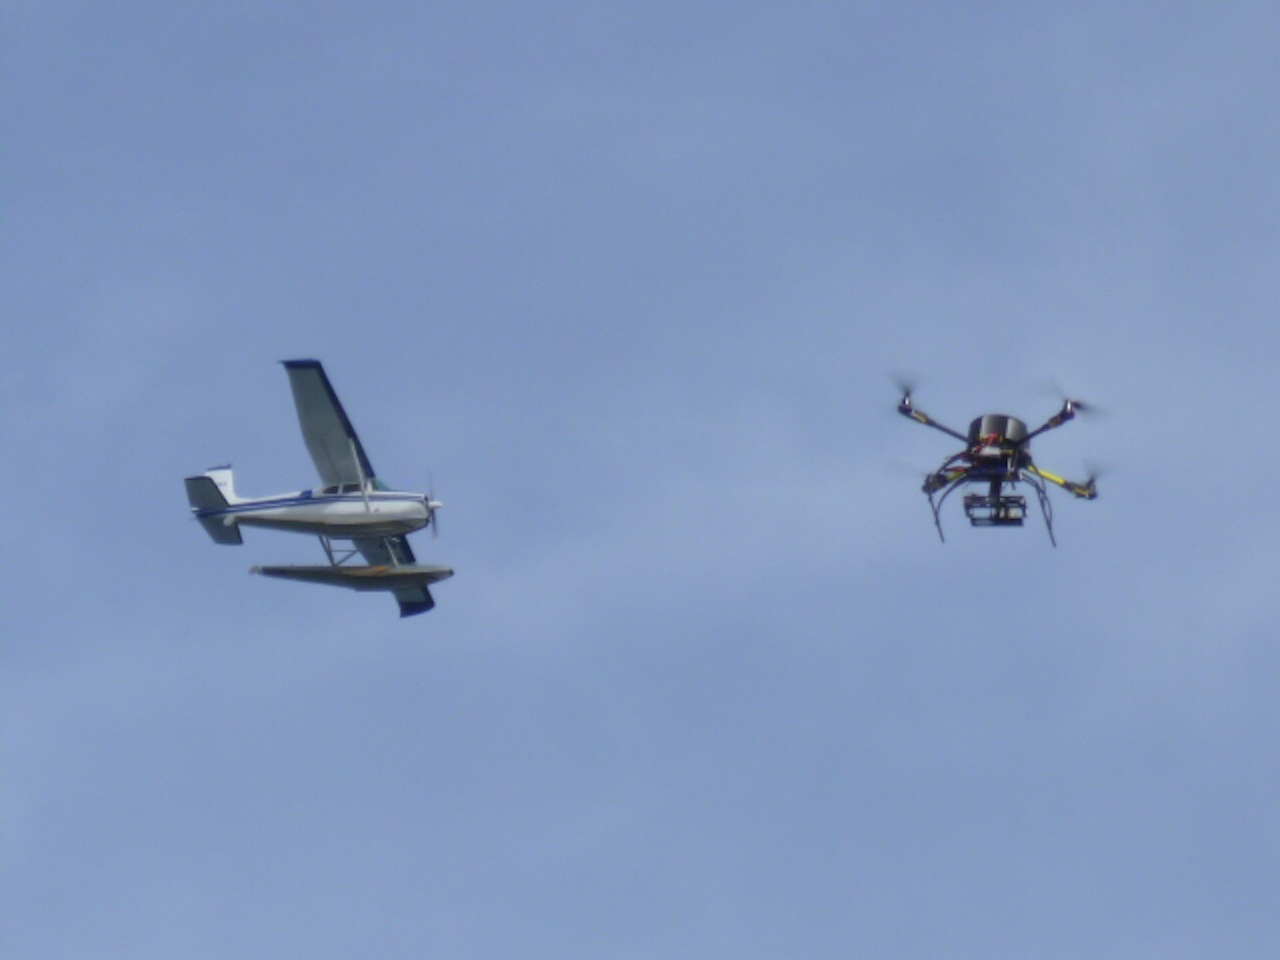 David Flying The Quadcopter And A Seaplane Happened To Go By.  Thanks To Debbie Jelen For The Great Photo.